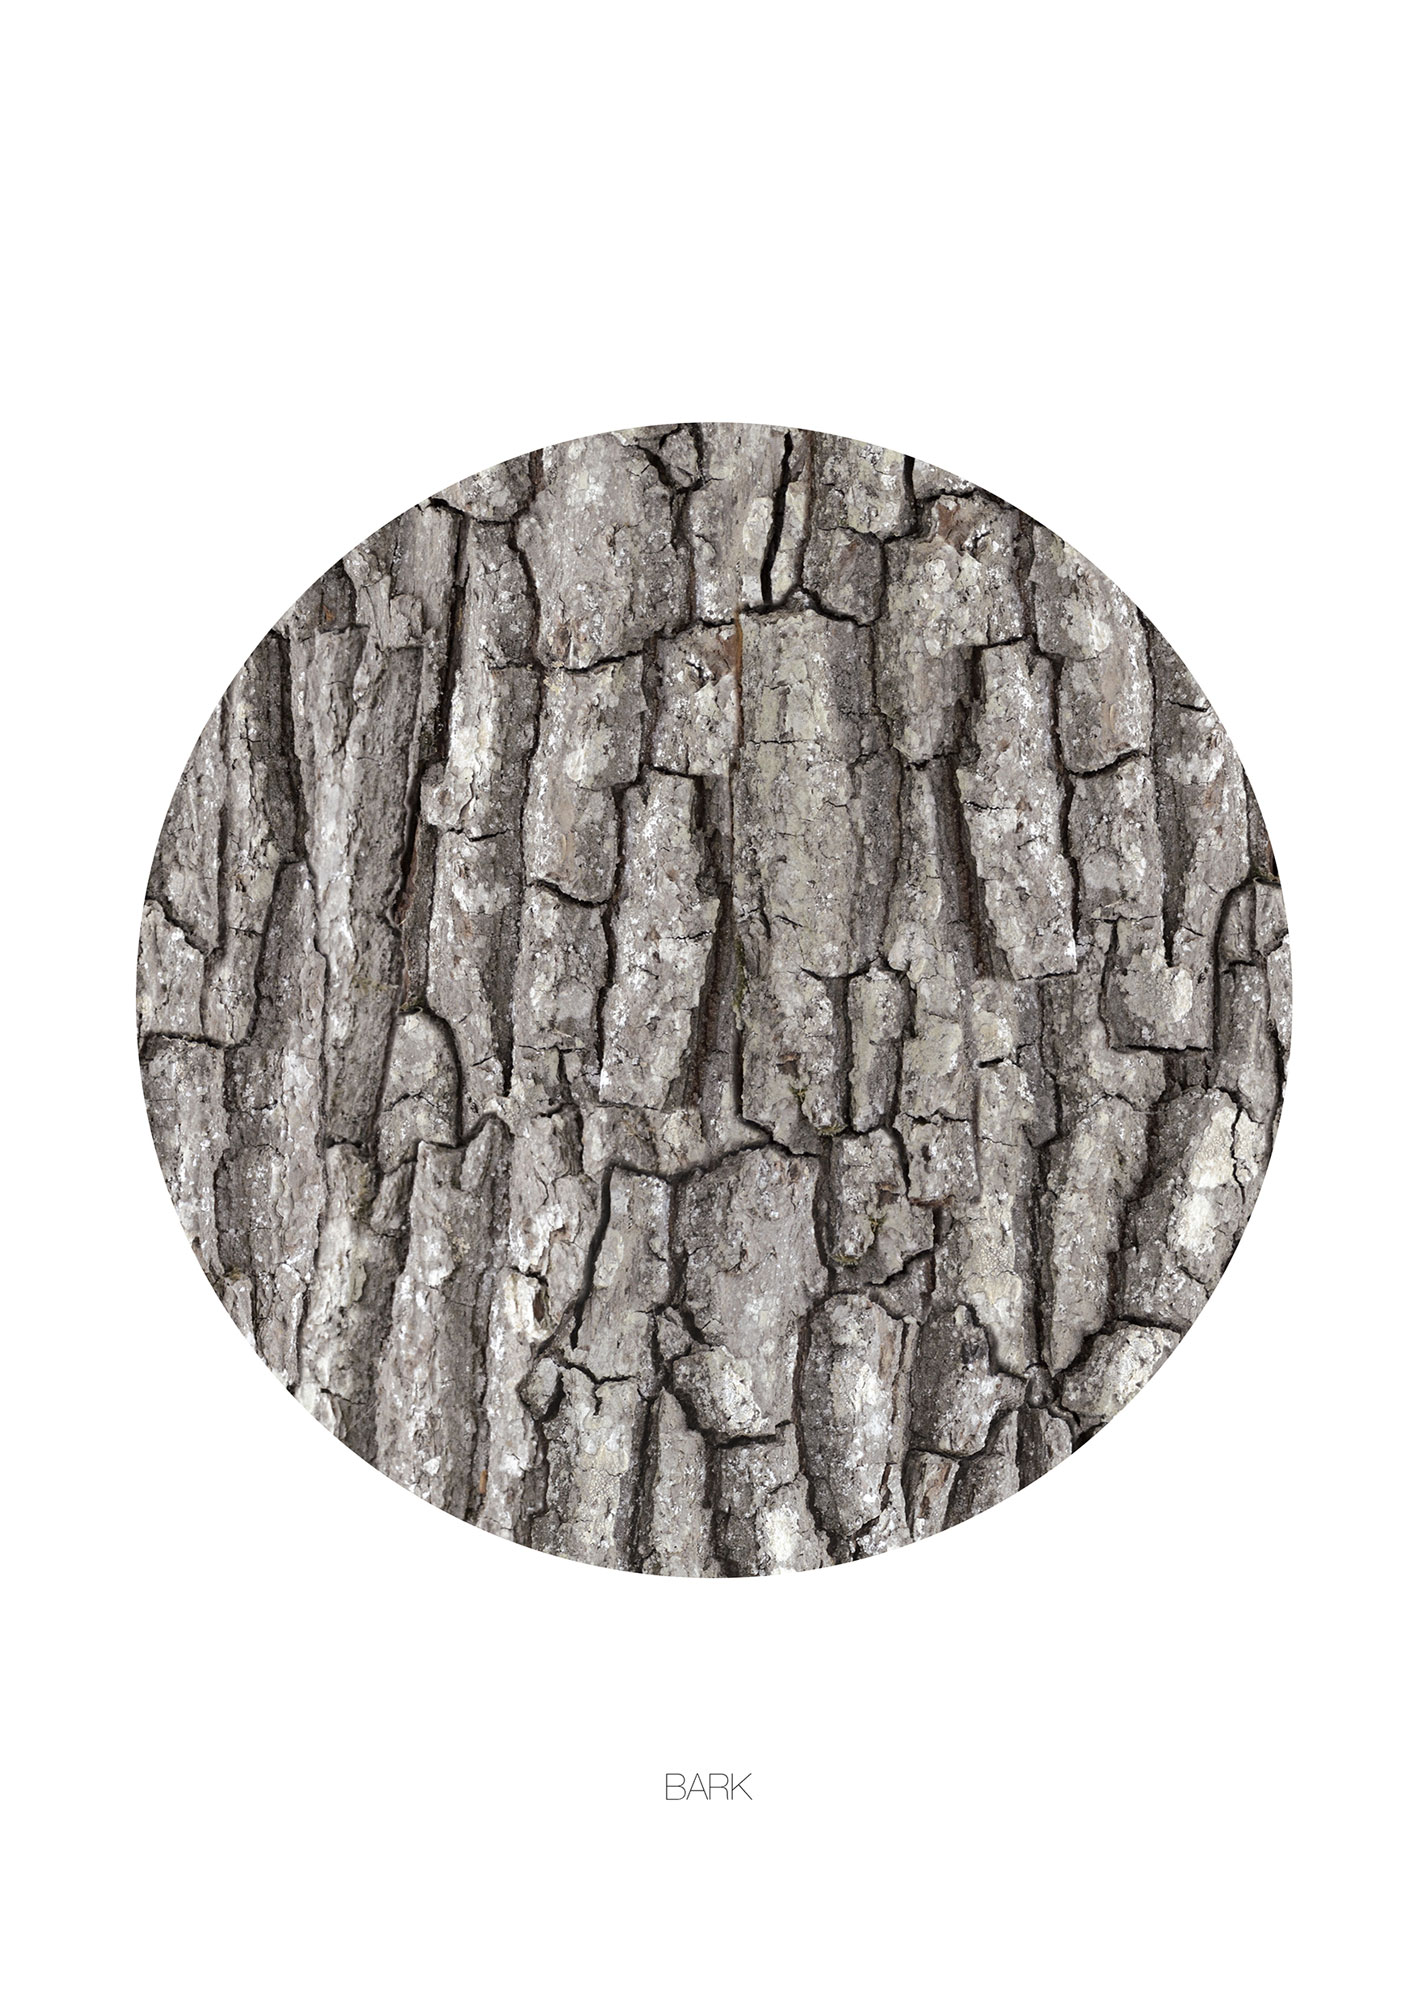 Image of   BARK - CIRCLE-70 x 100